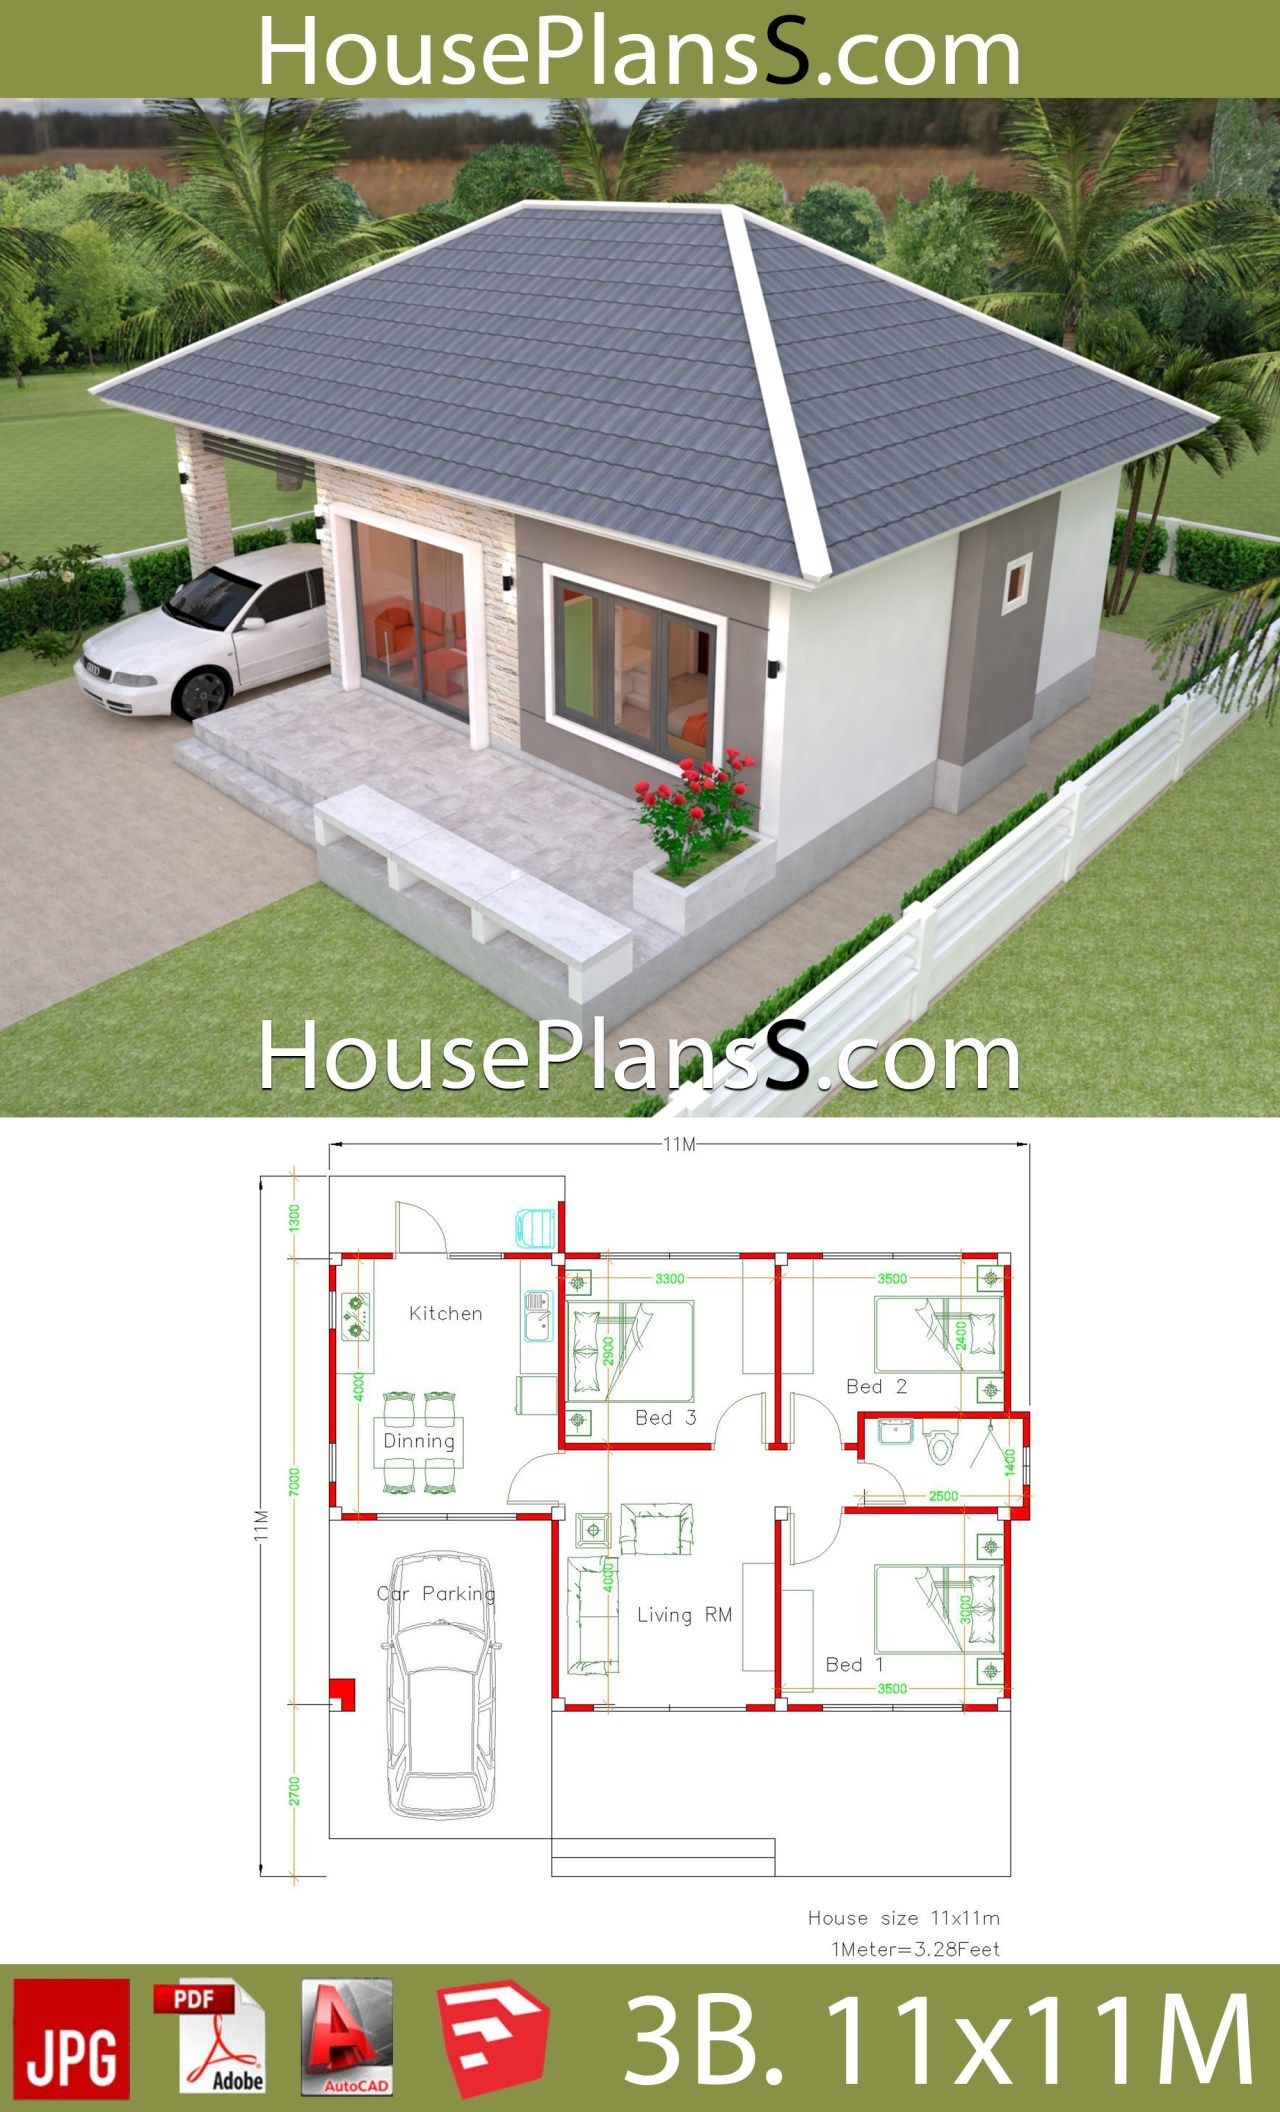 Simple House Design Plans 11x11 With 3 Bedrooms Full Plans Simple House Simple House Design House Layout Plans